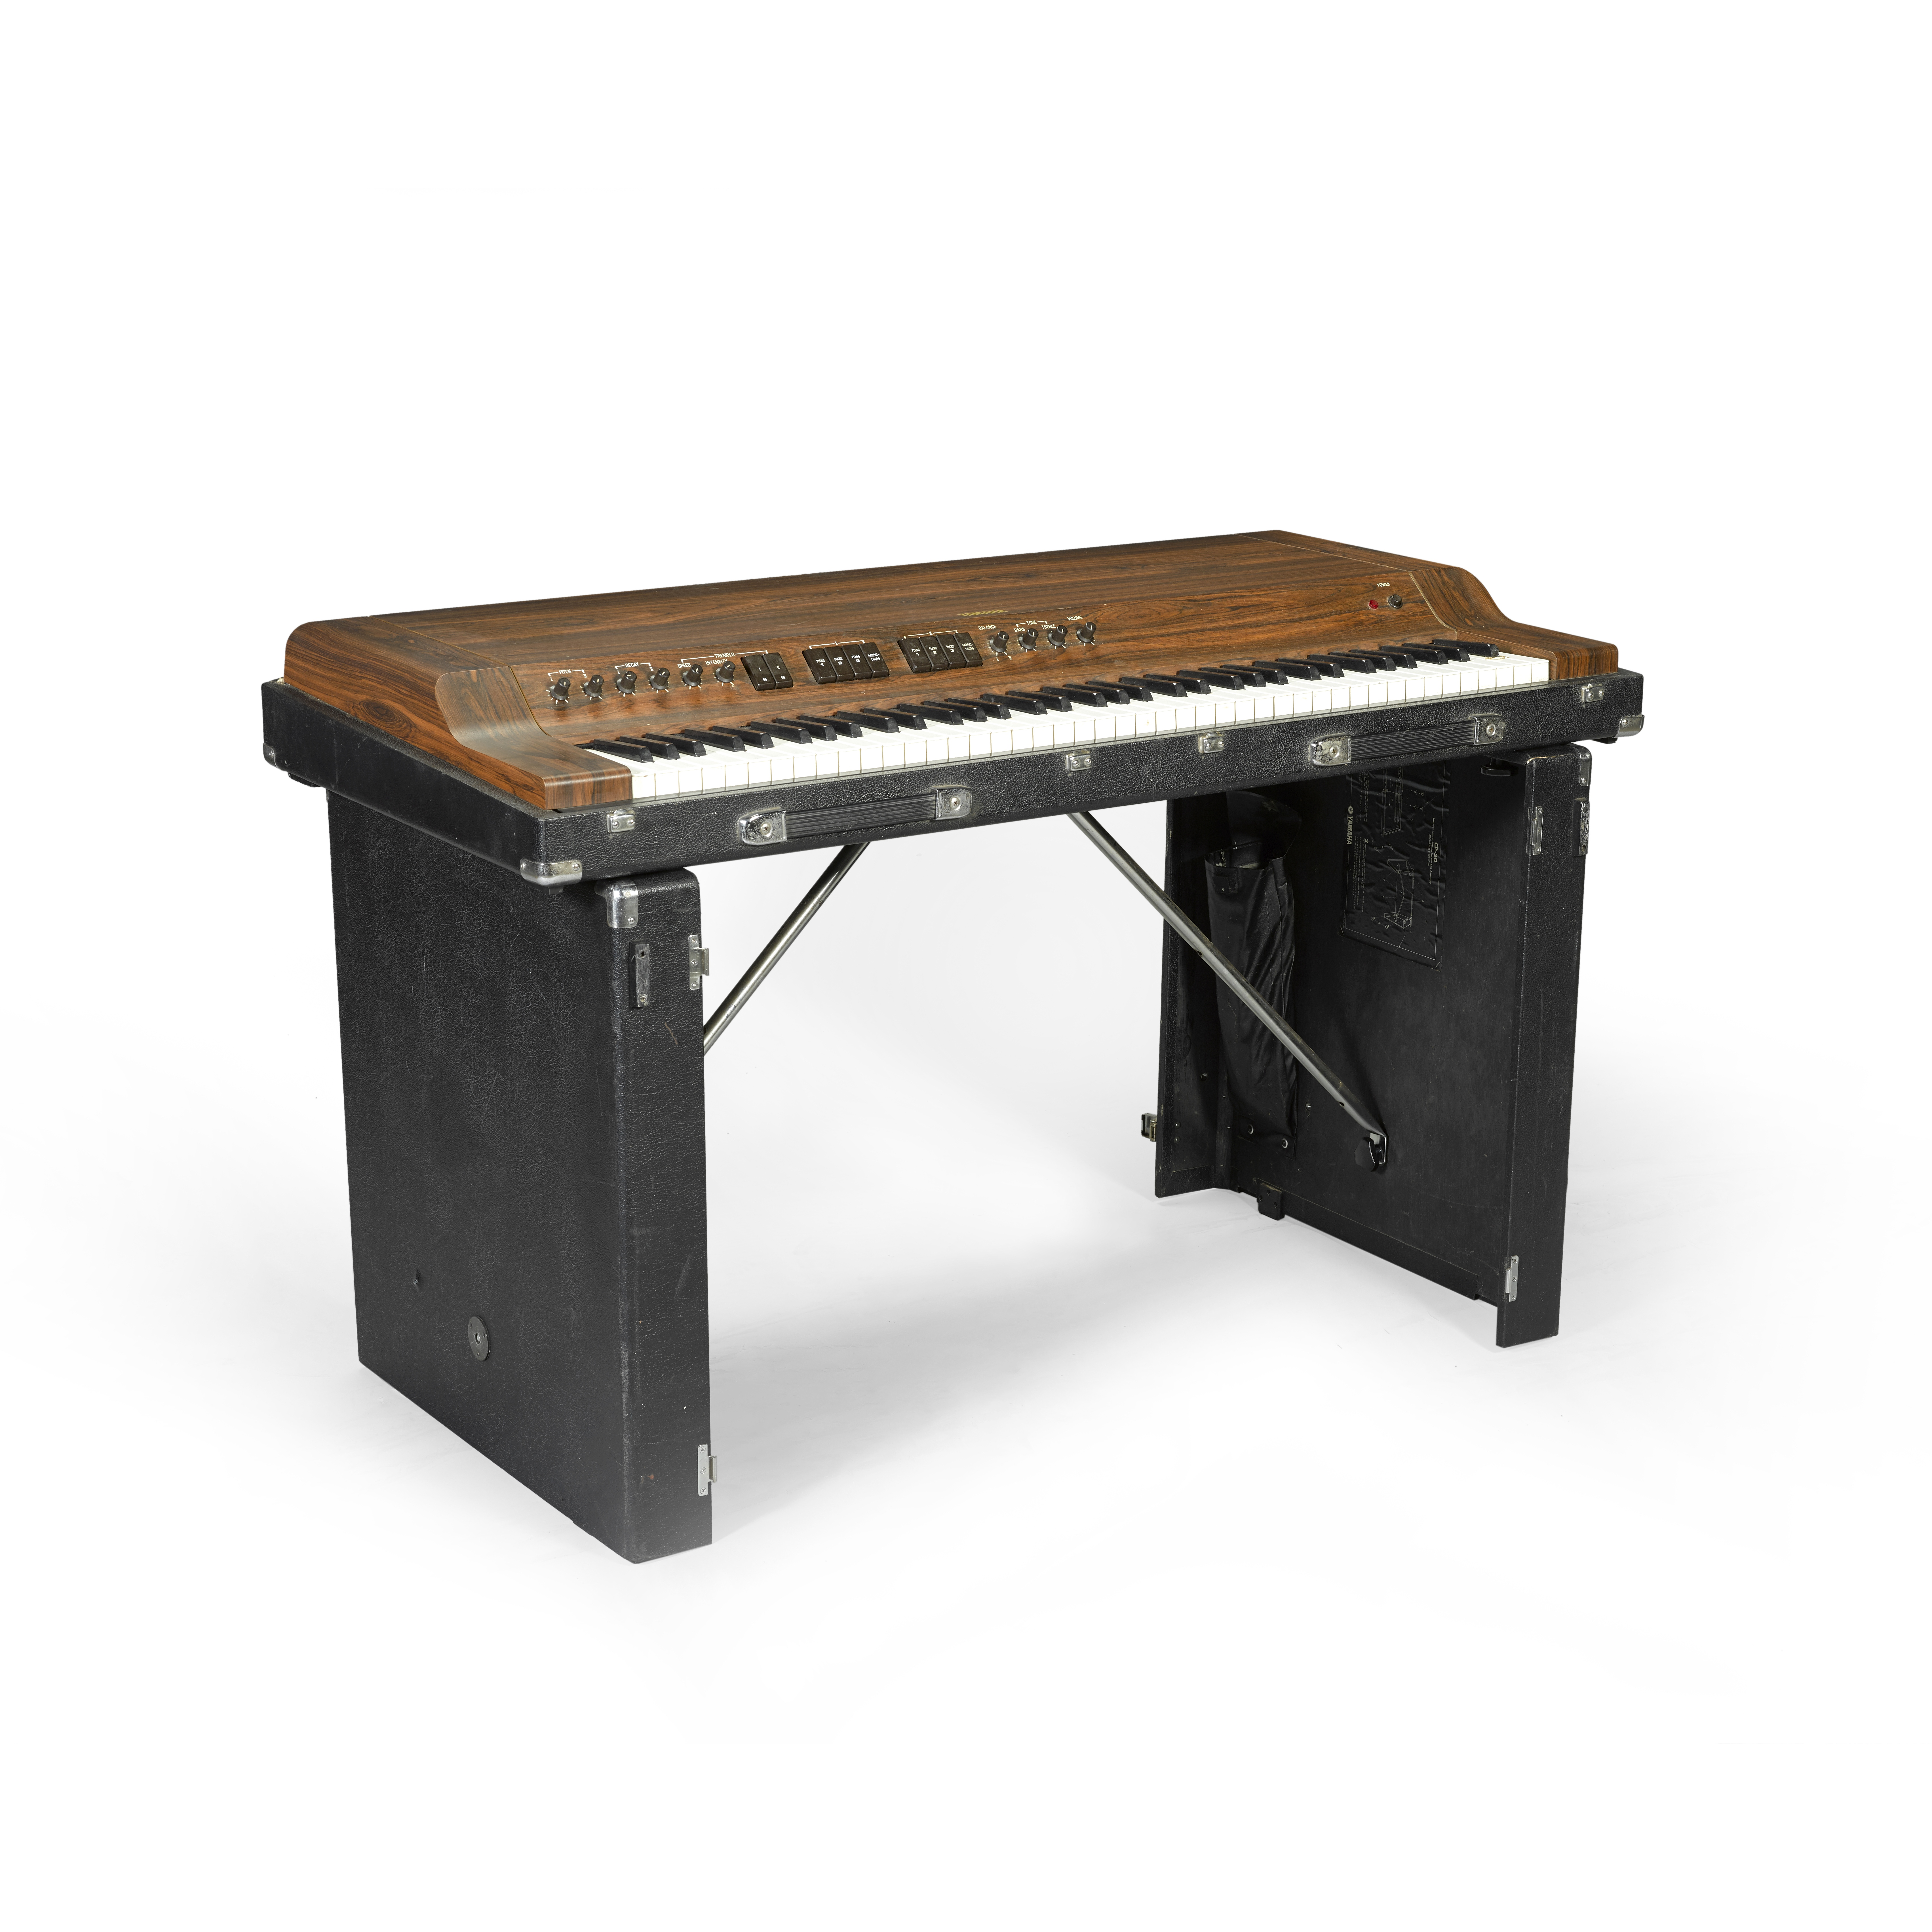 Lot 345 - A YAMAHA CP-30 ELECTRIC PIANO OWNED AND PLAYED BY JERRY GARCIA